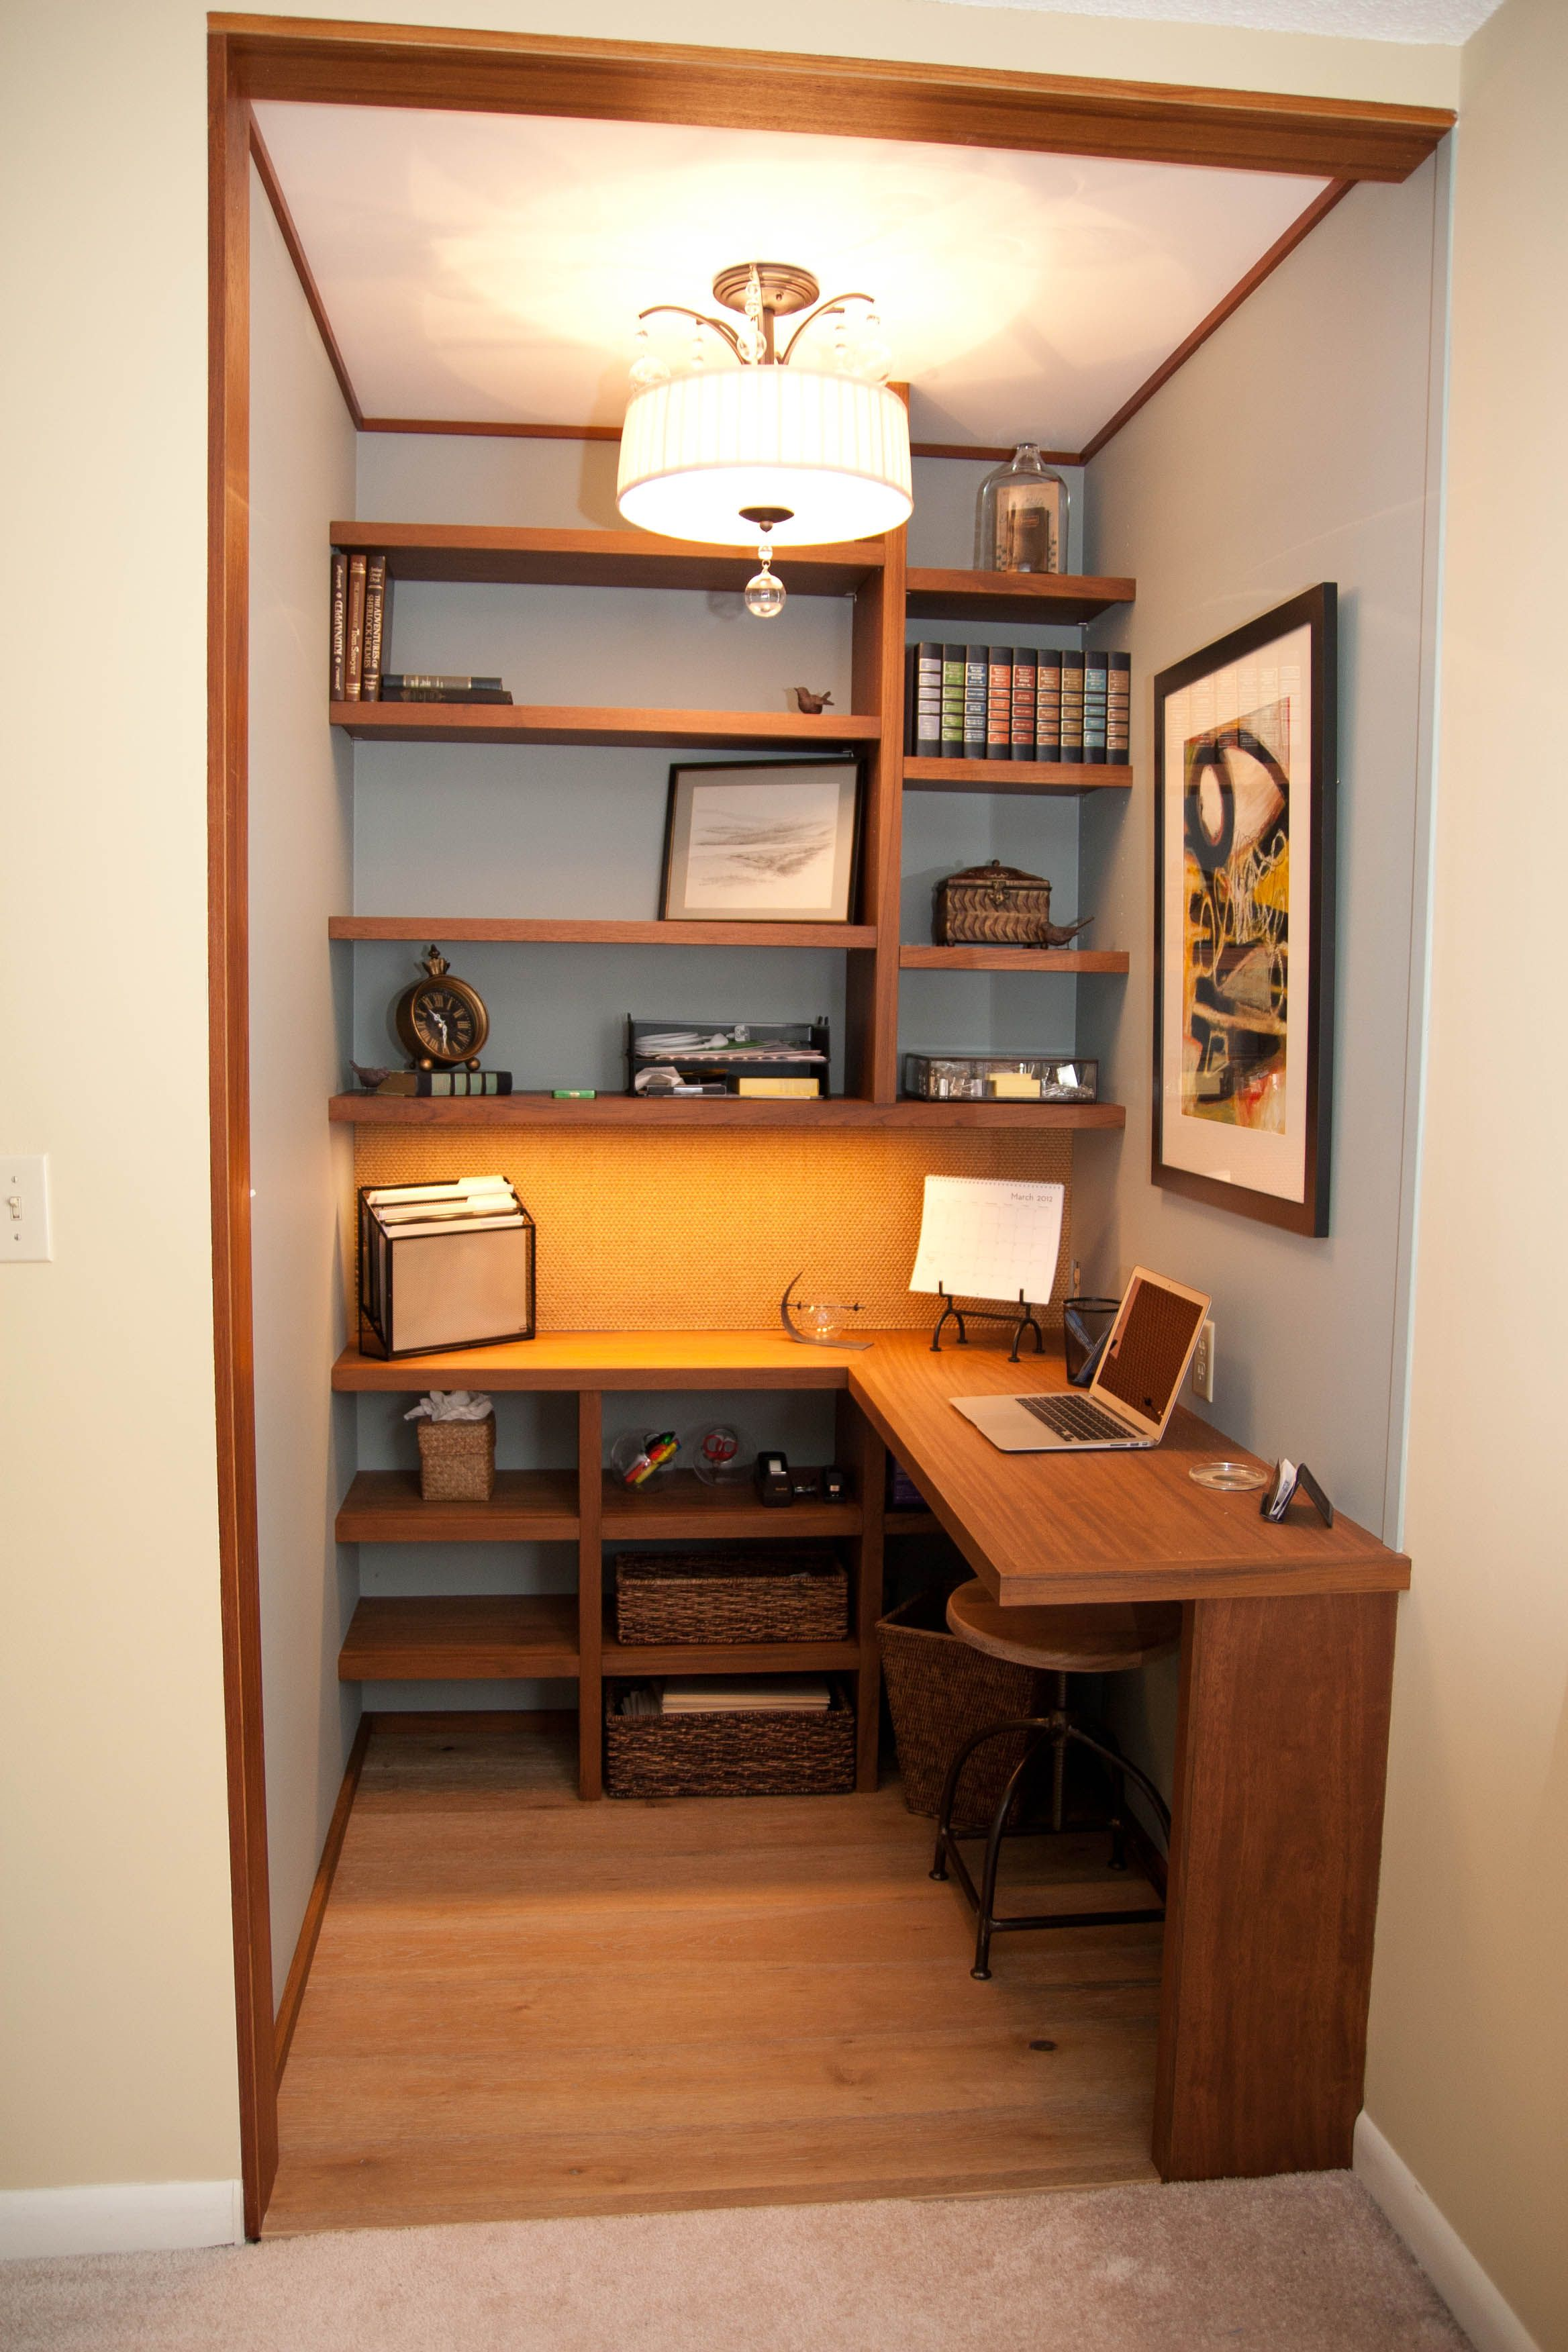 Home Office In Walk In Closet U003d Tech Room!